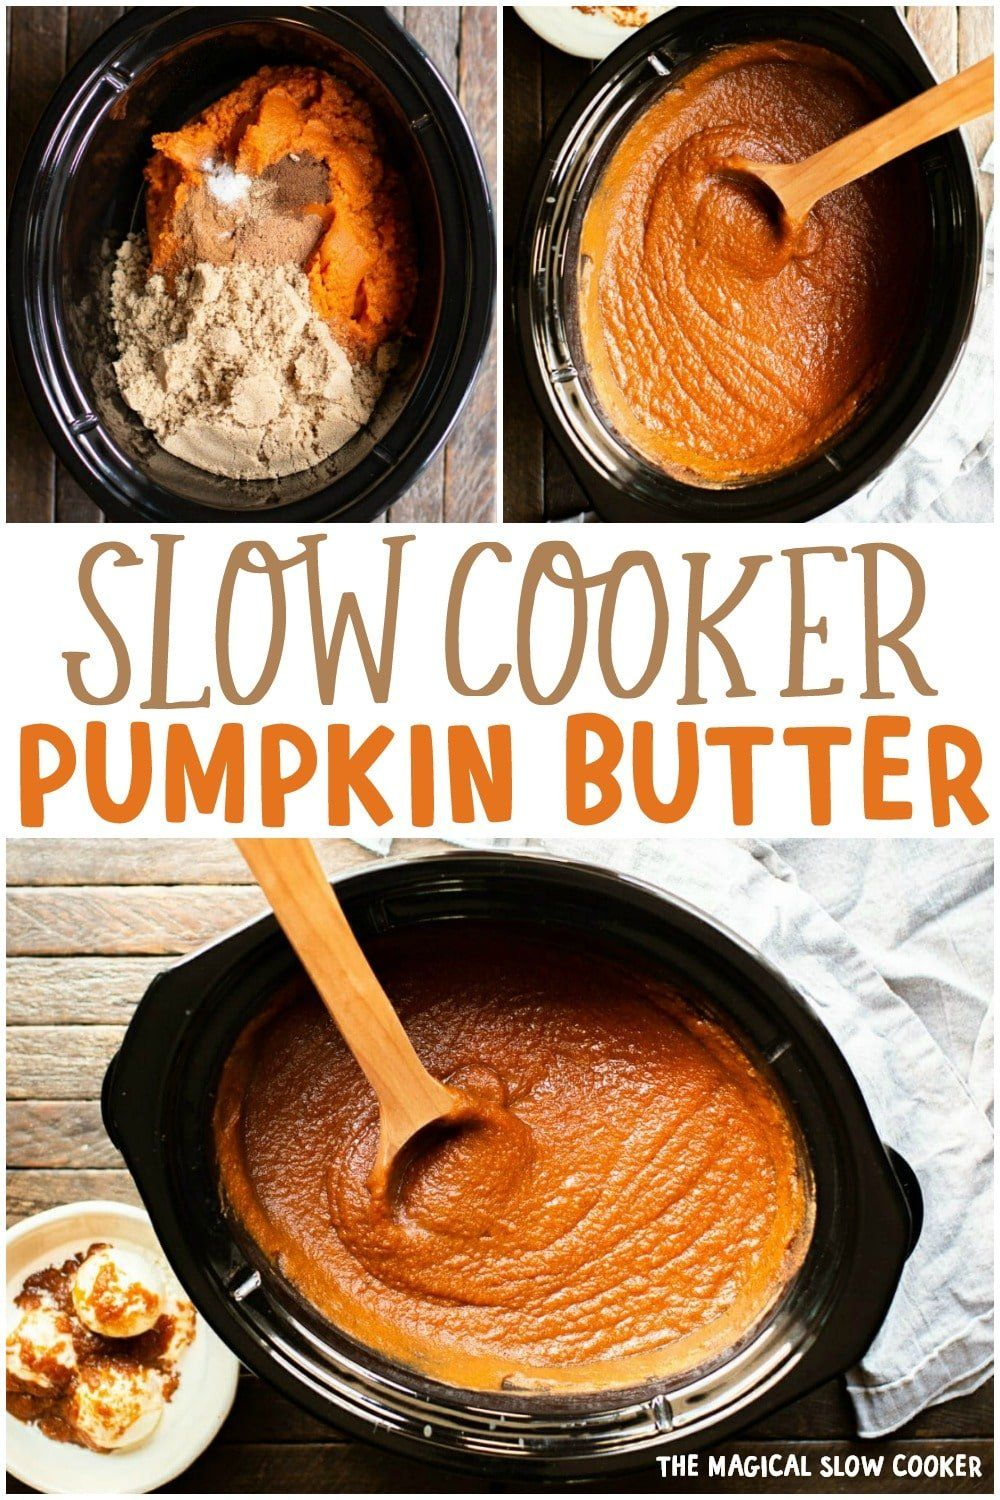 Slow Cooker Pumpkin Butter Slow Cooker Pumpkin Butter is perfectly spiced and sweetened. Wonderful on toast and ice cream. - The Magical Slow Cooker